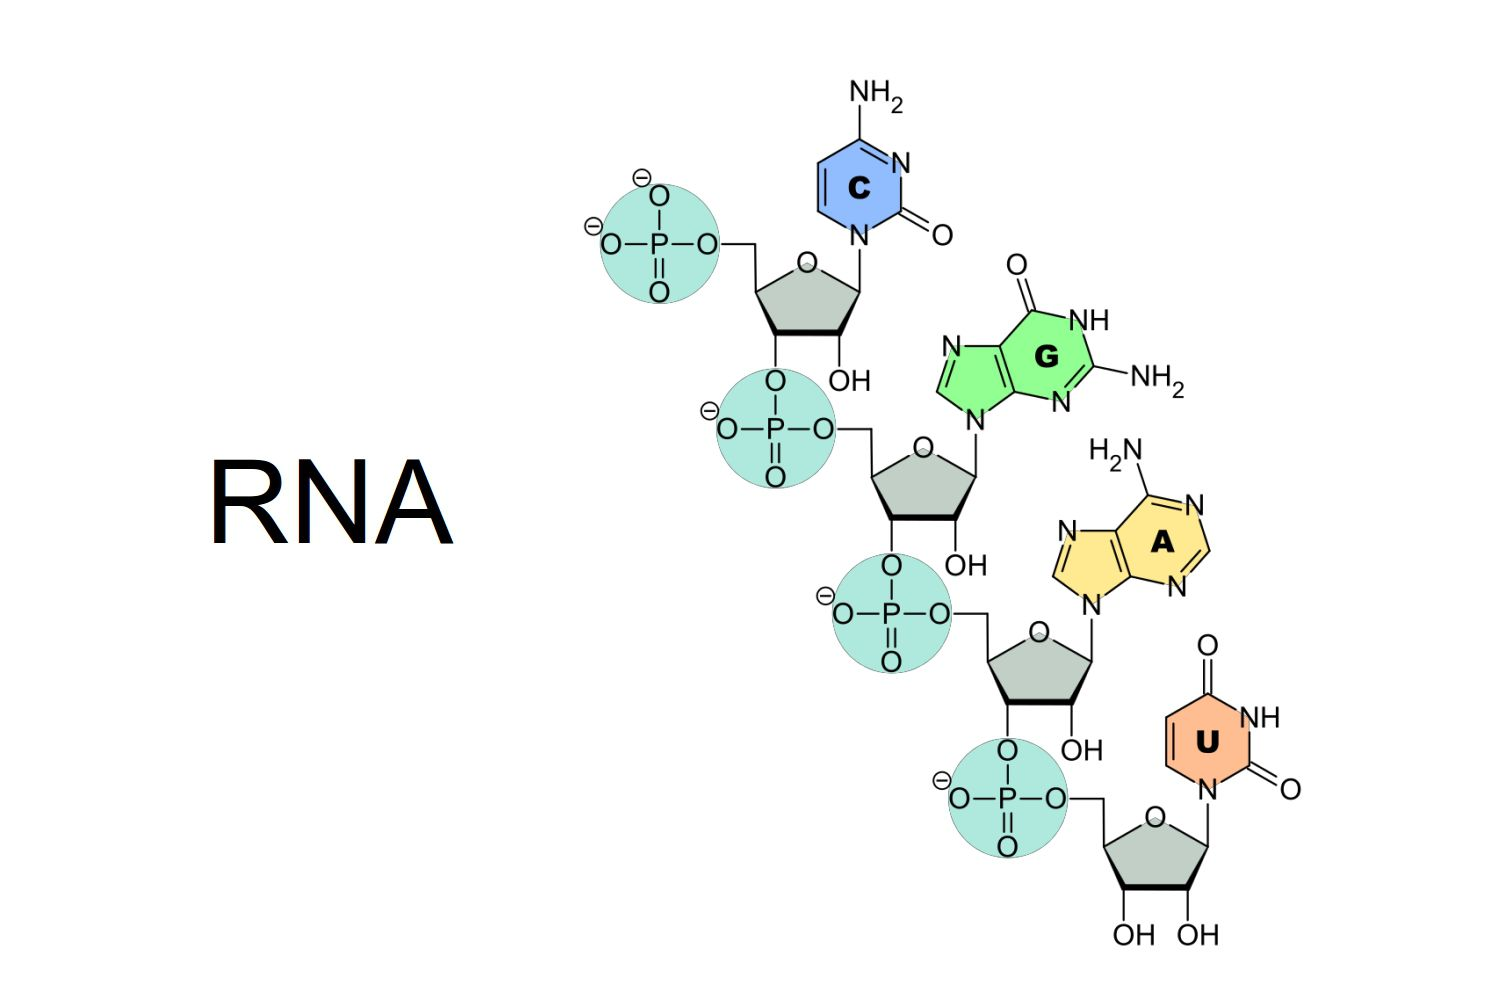 hight resolution of rna structure